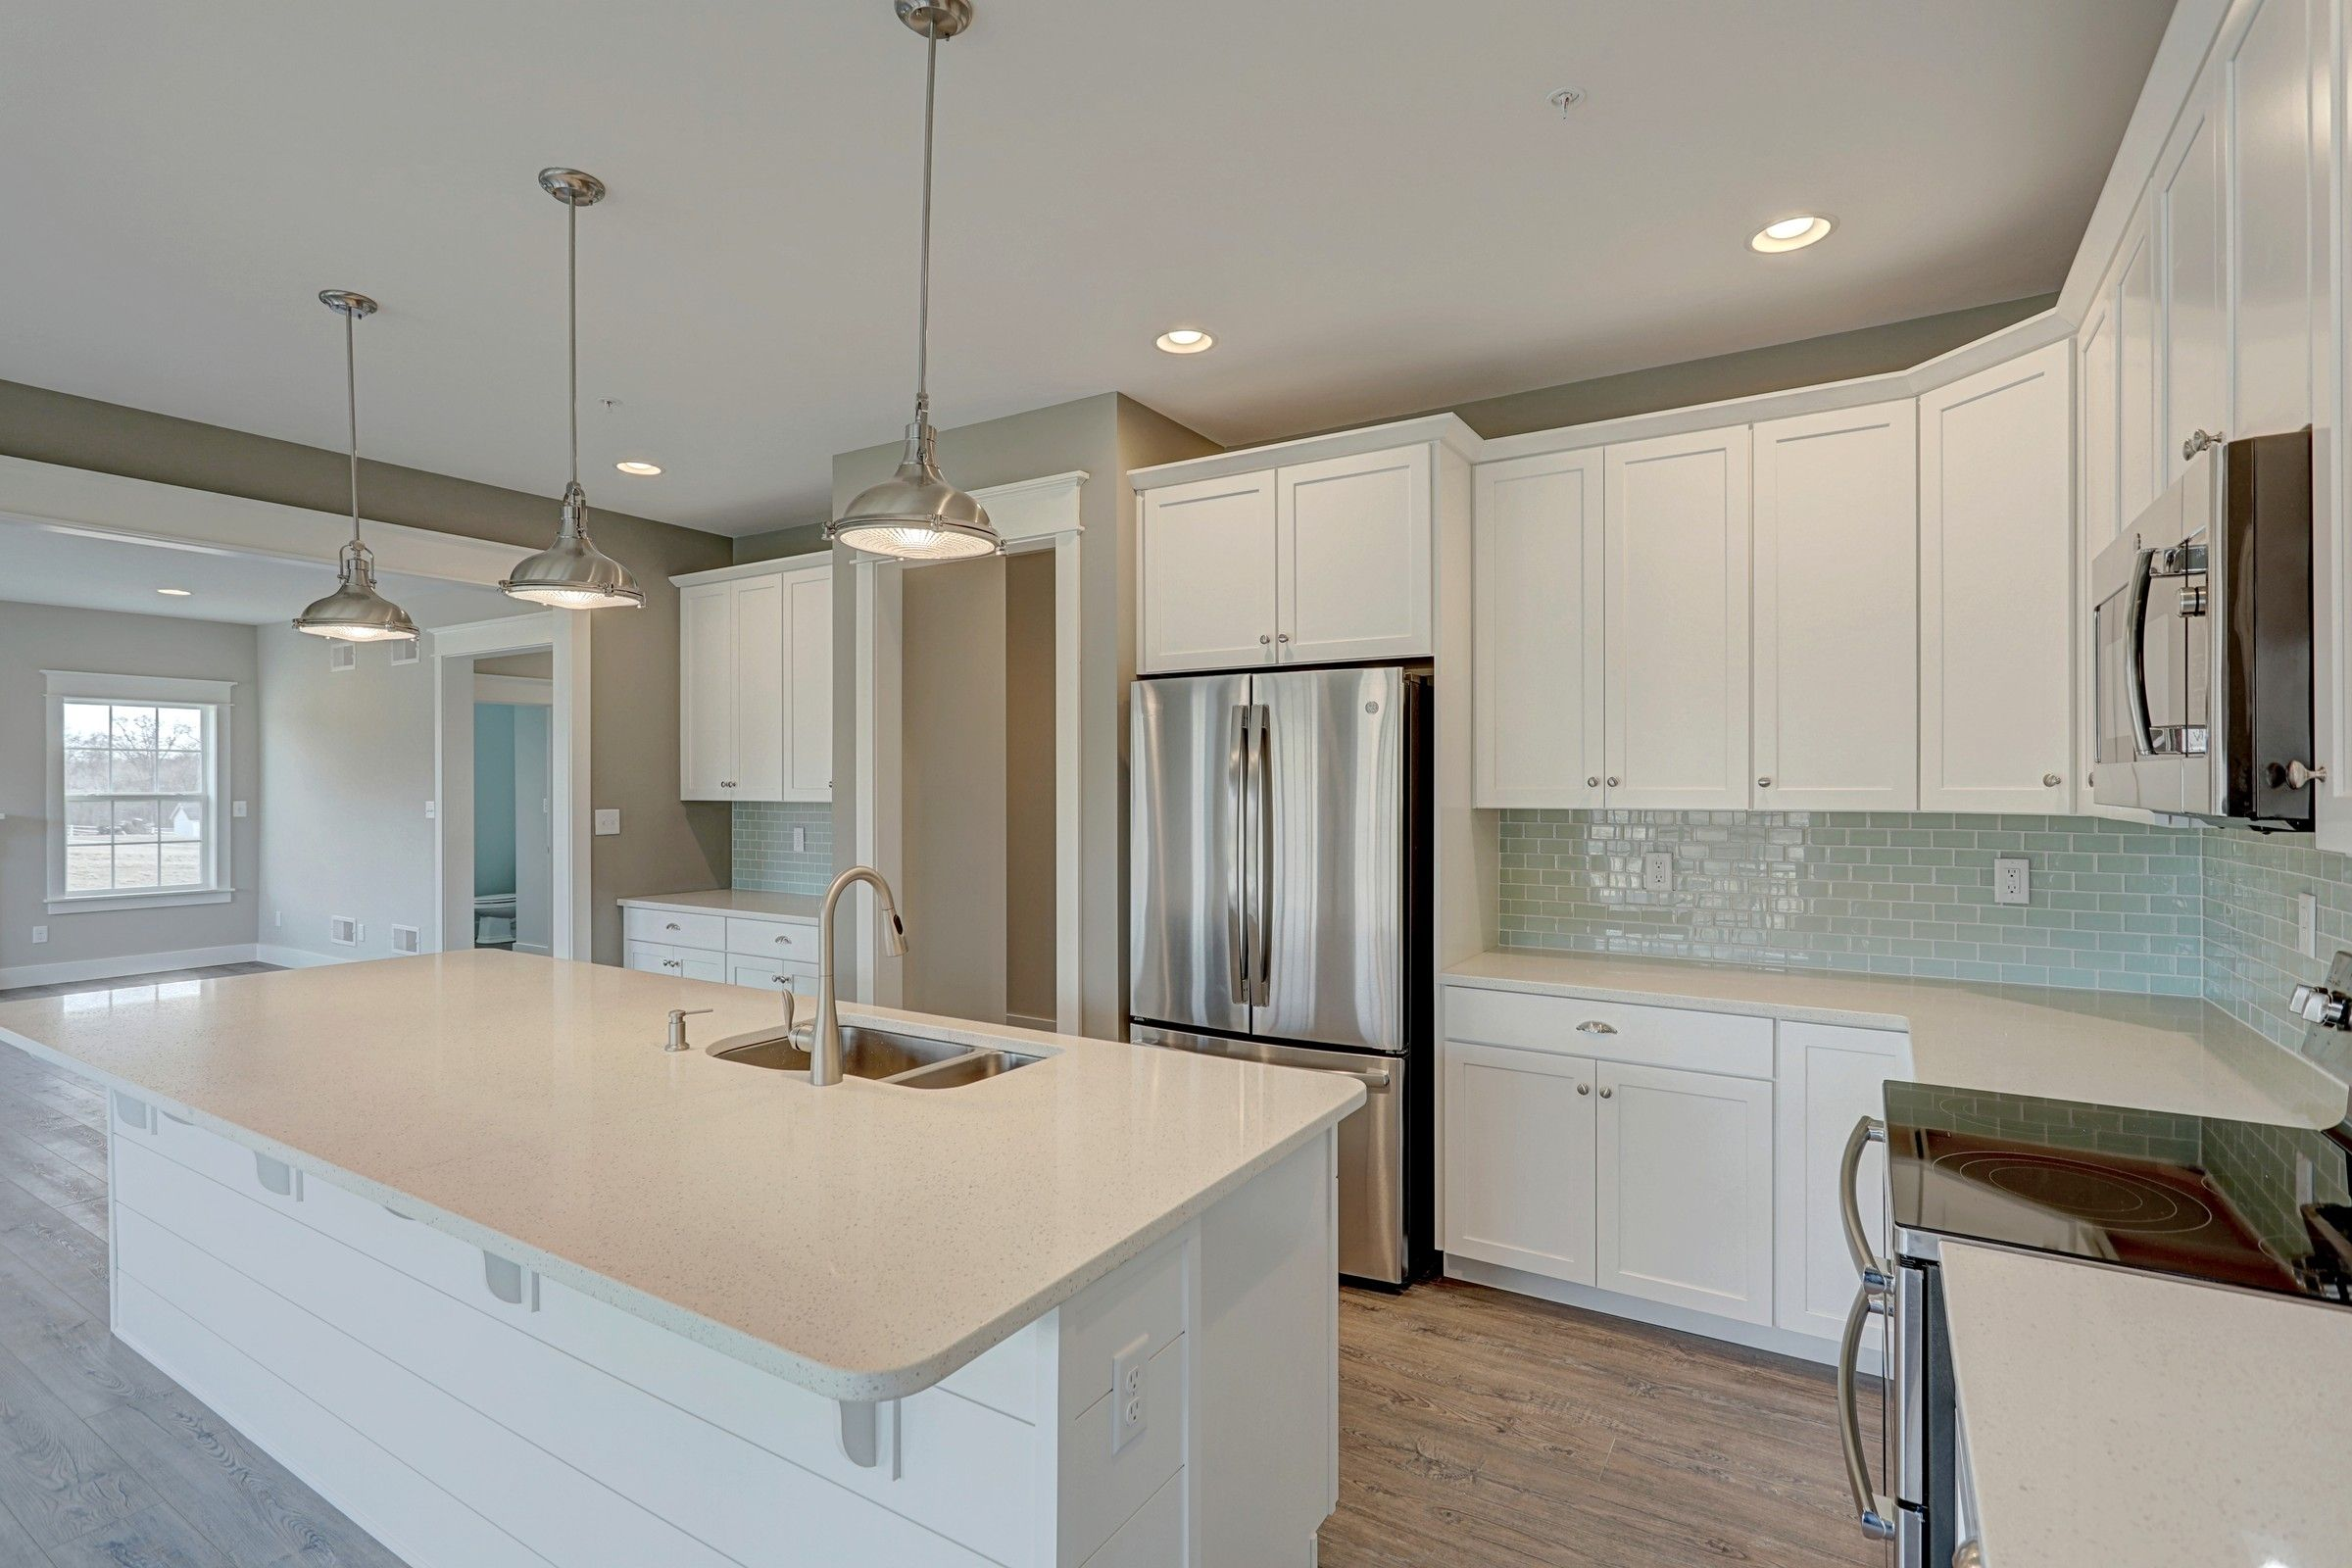 Kitchen featured in the Ethan Heritage By Keystone Custom Homes in Lancaster, PA